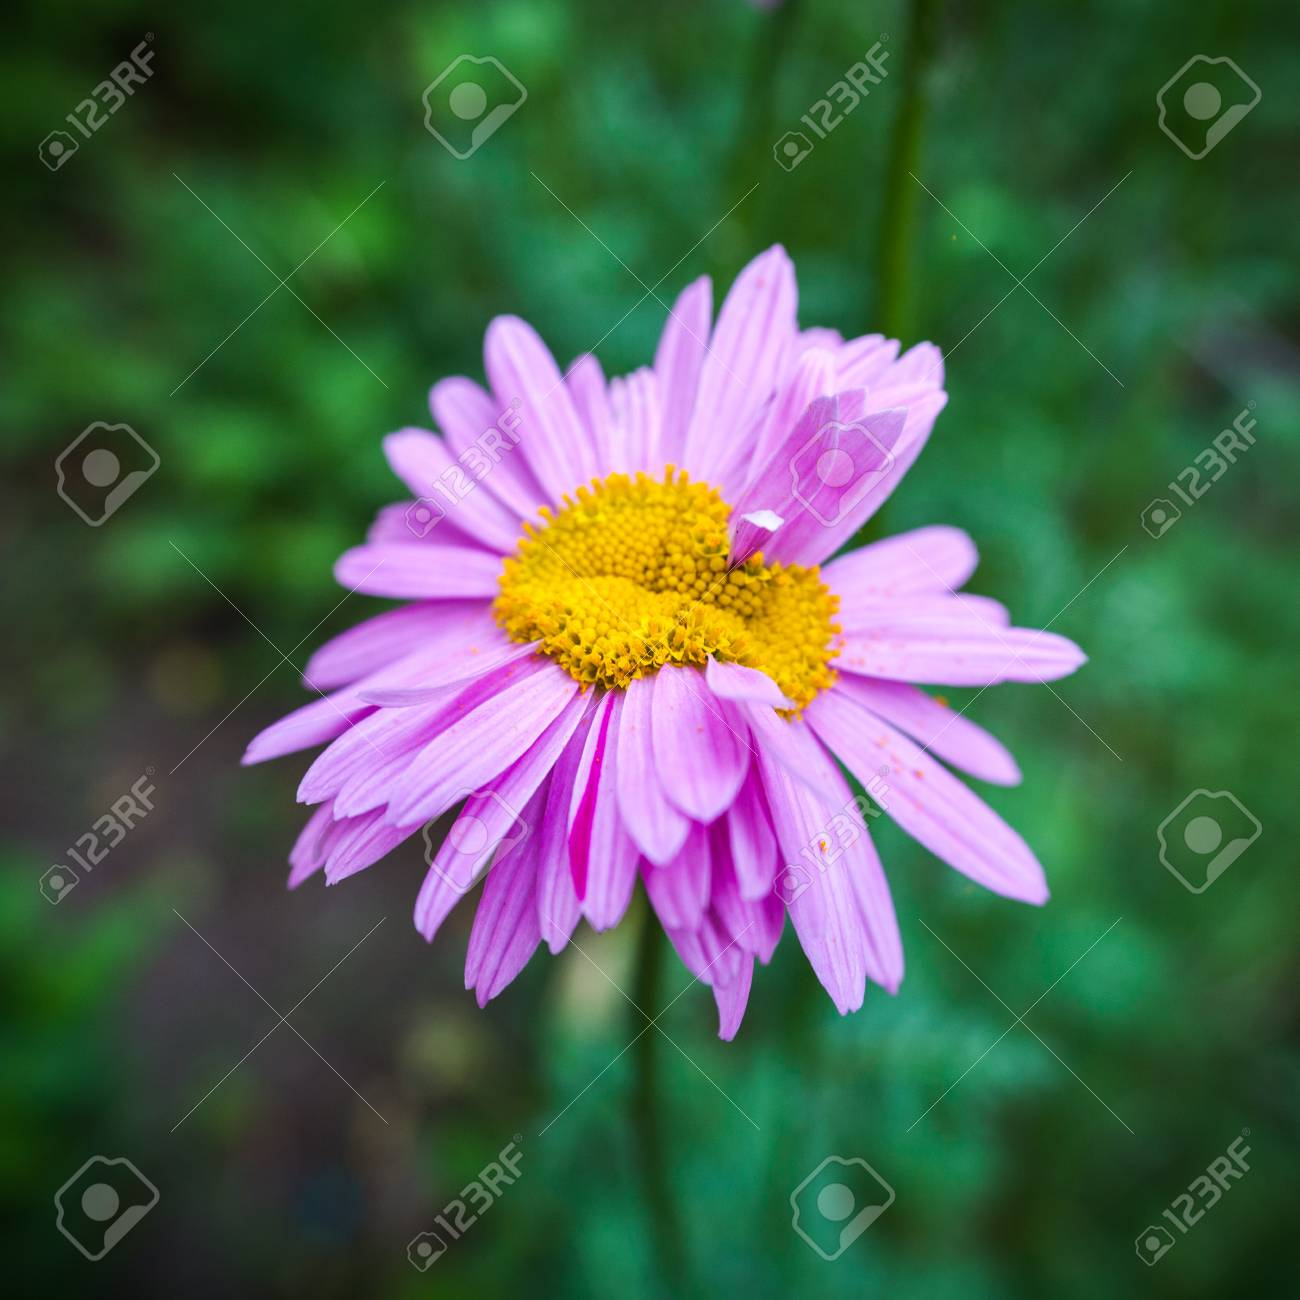 Abnormal flower double headed pink daisy natural blurred abnormal flower double headed pink daisy natural blurred background stock photo 85235218 izmirmasajfo Image collections